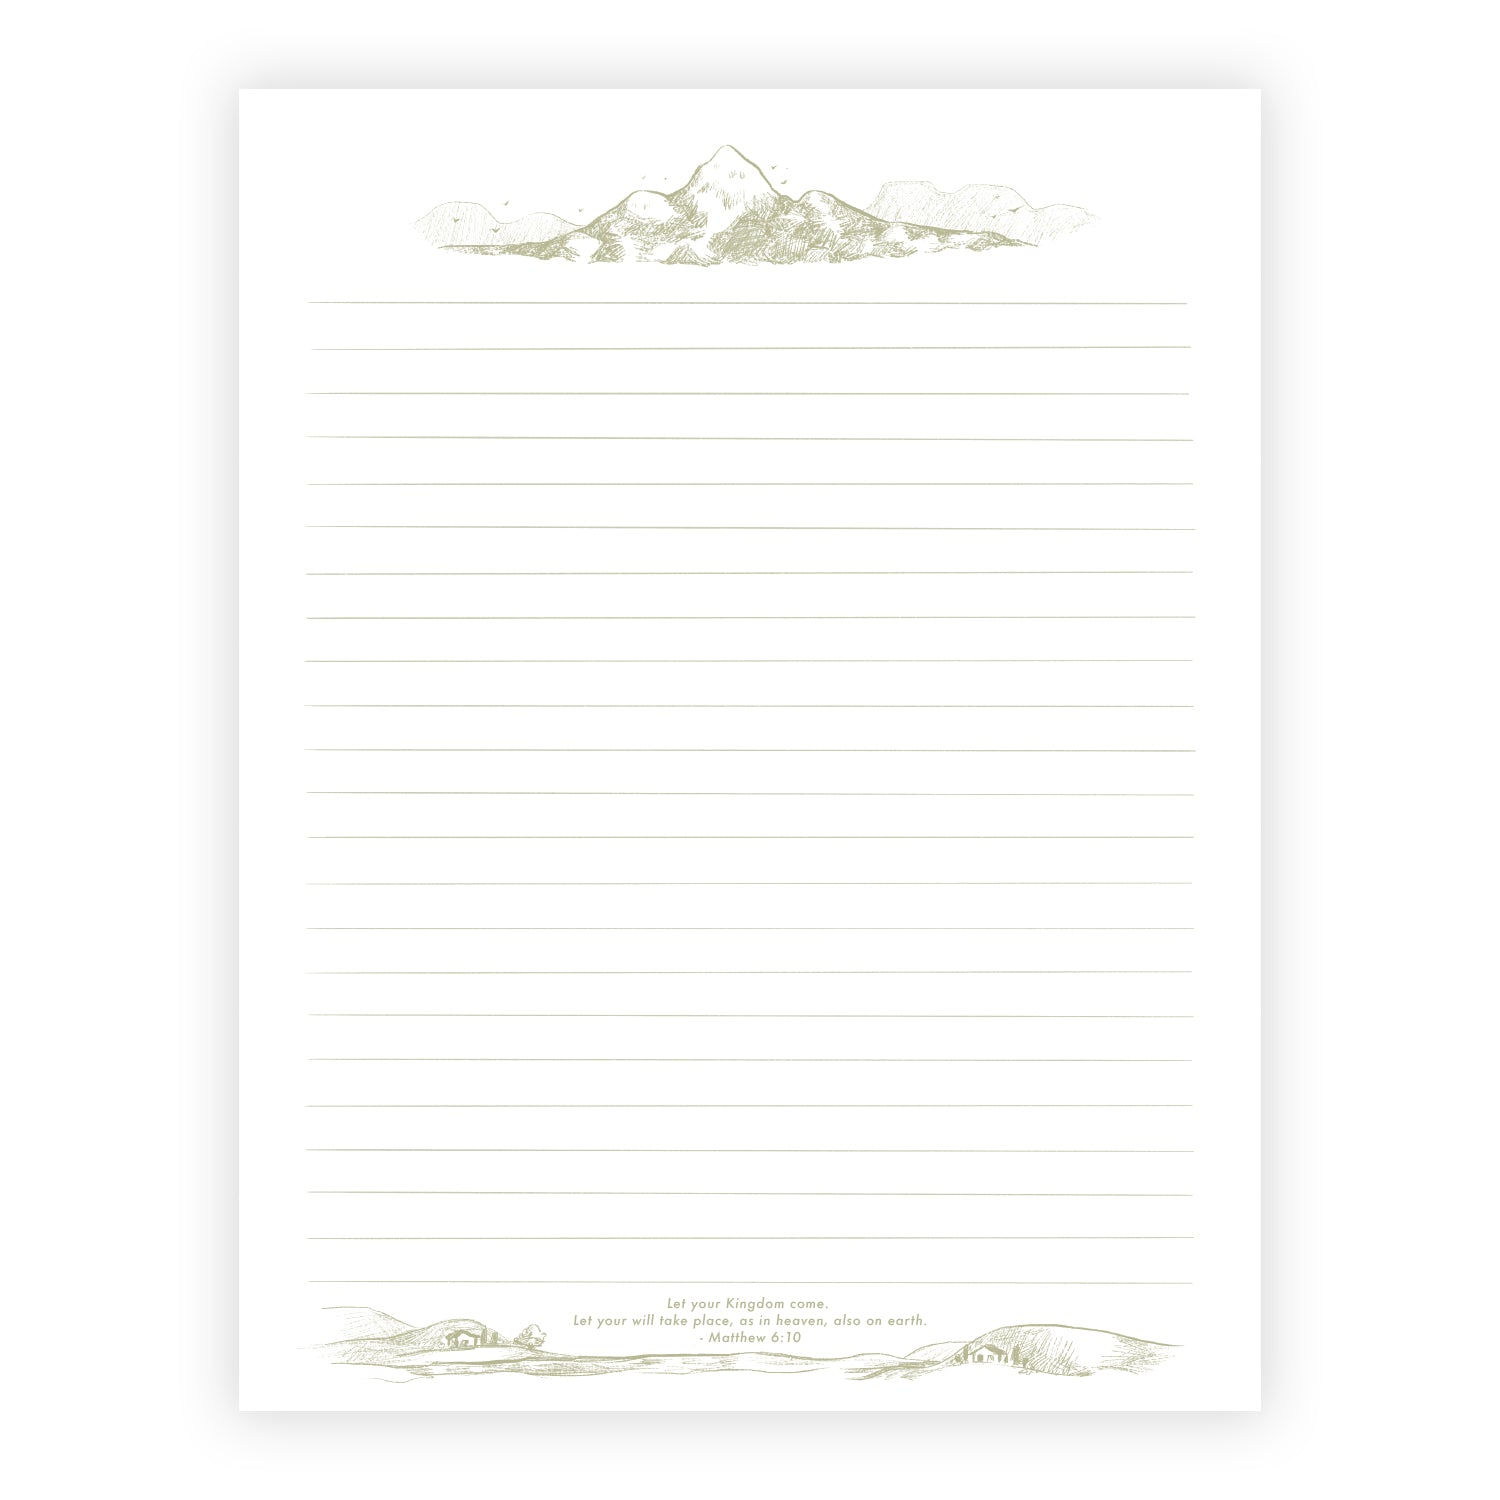 Printable Letter Writing Sheets - Mountain - Let your Kingdom Come - Matthew 6:10